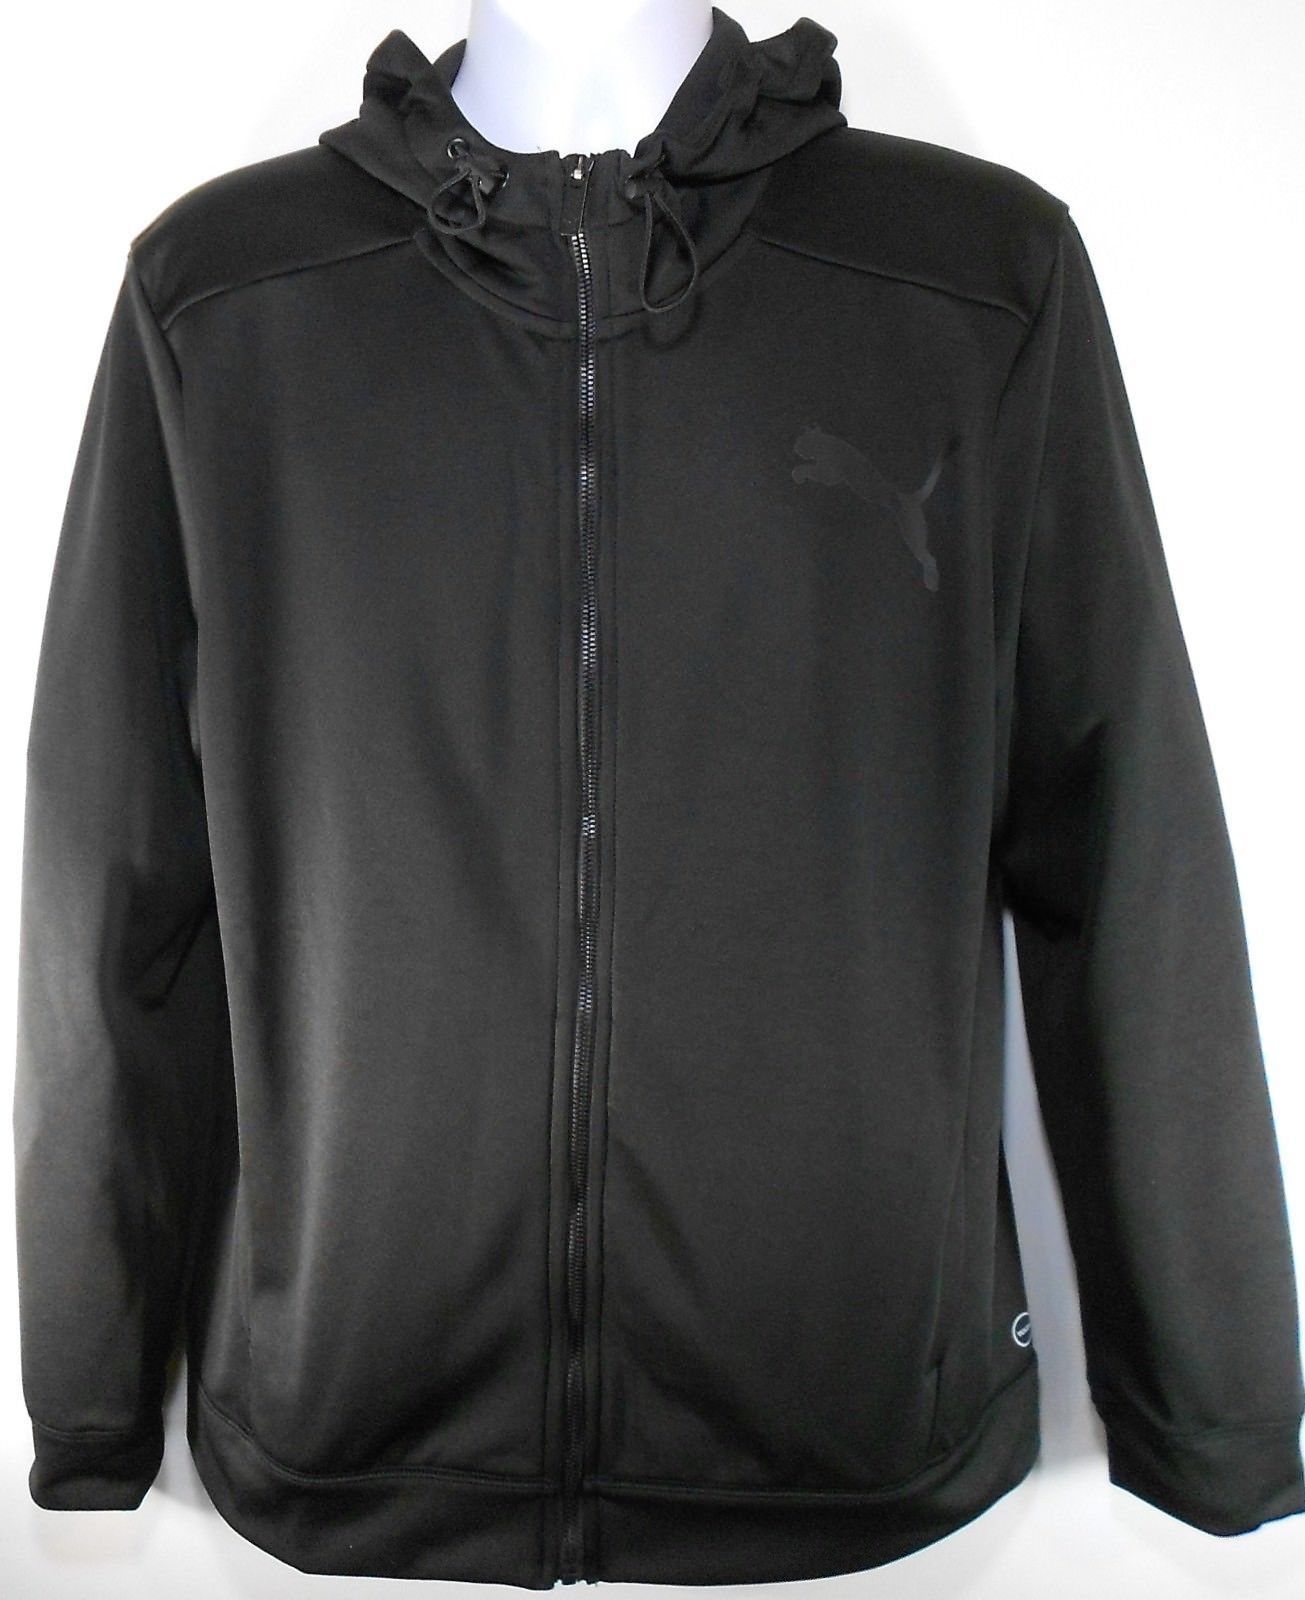 Primary image for PUMA POLY FLEECE ZIP UP MEN'S BLACK FULL-ZIP HOODIE #594227-01